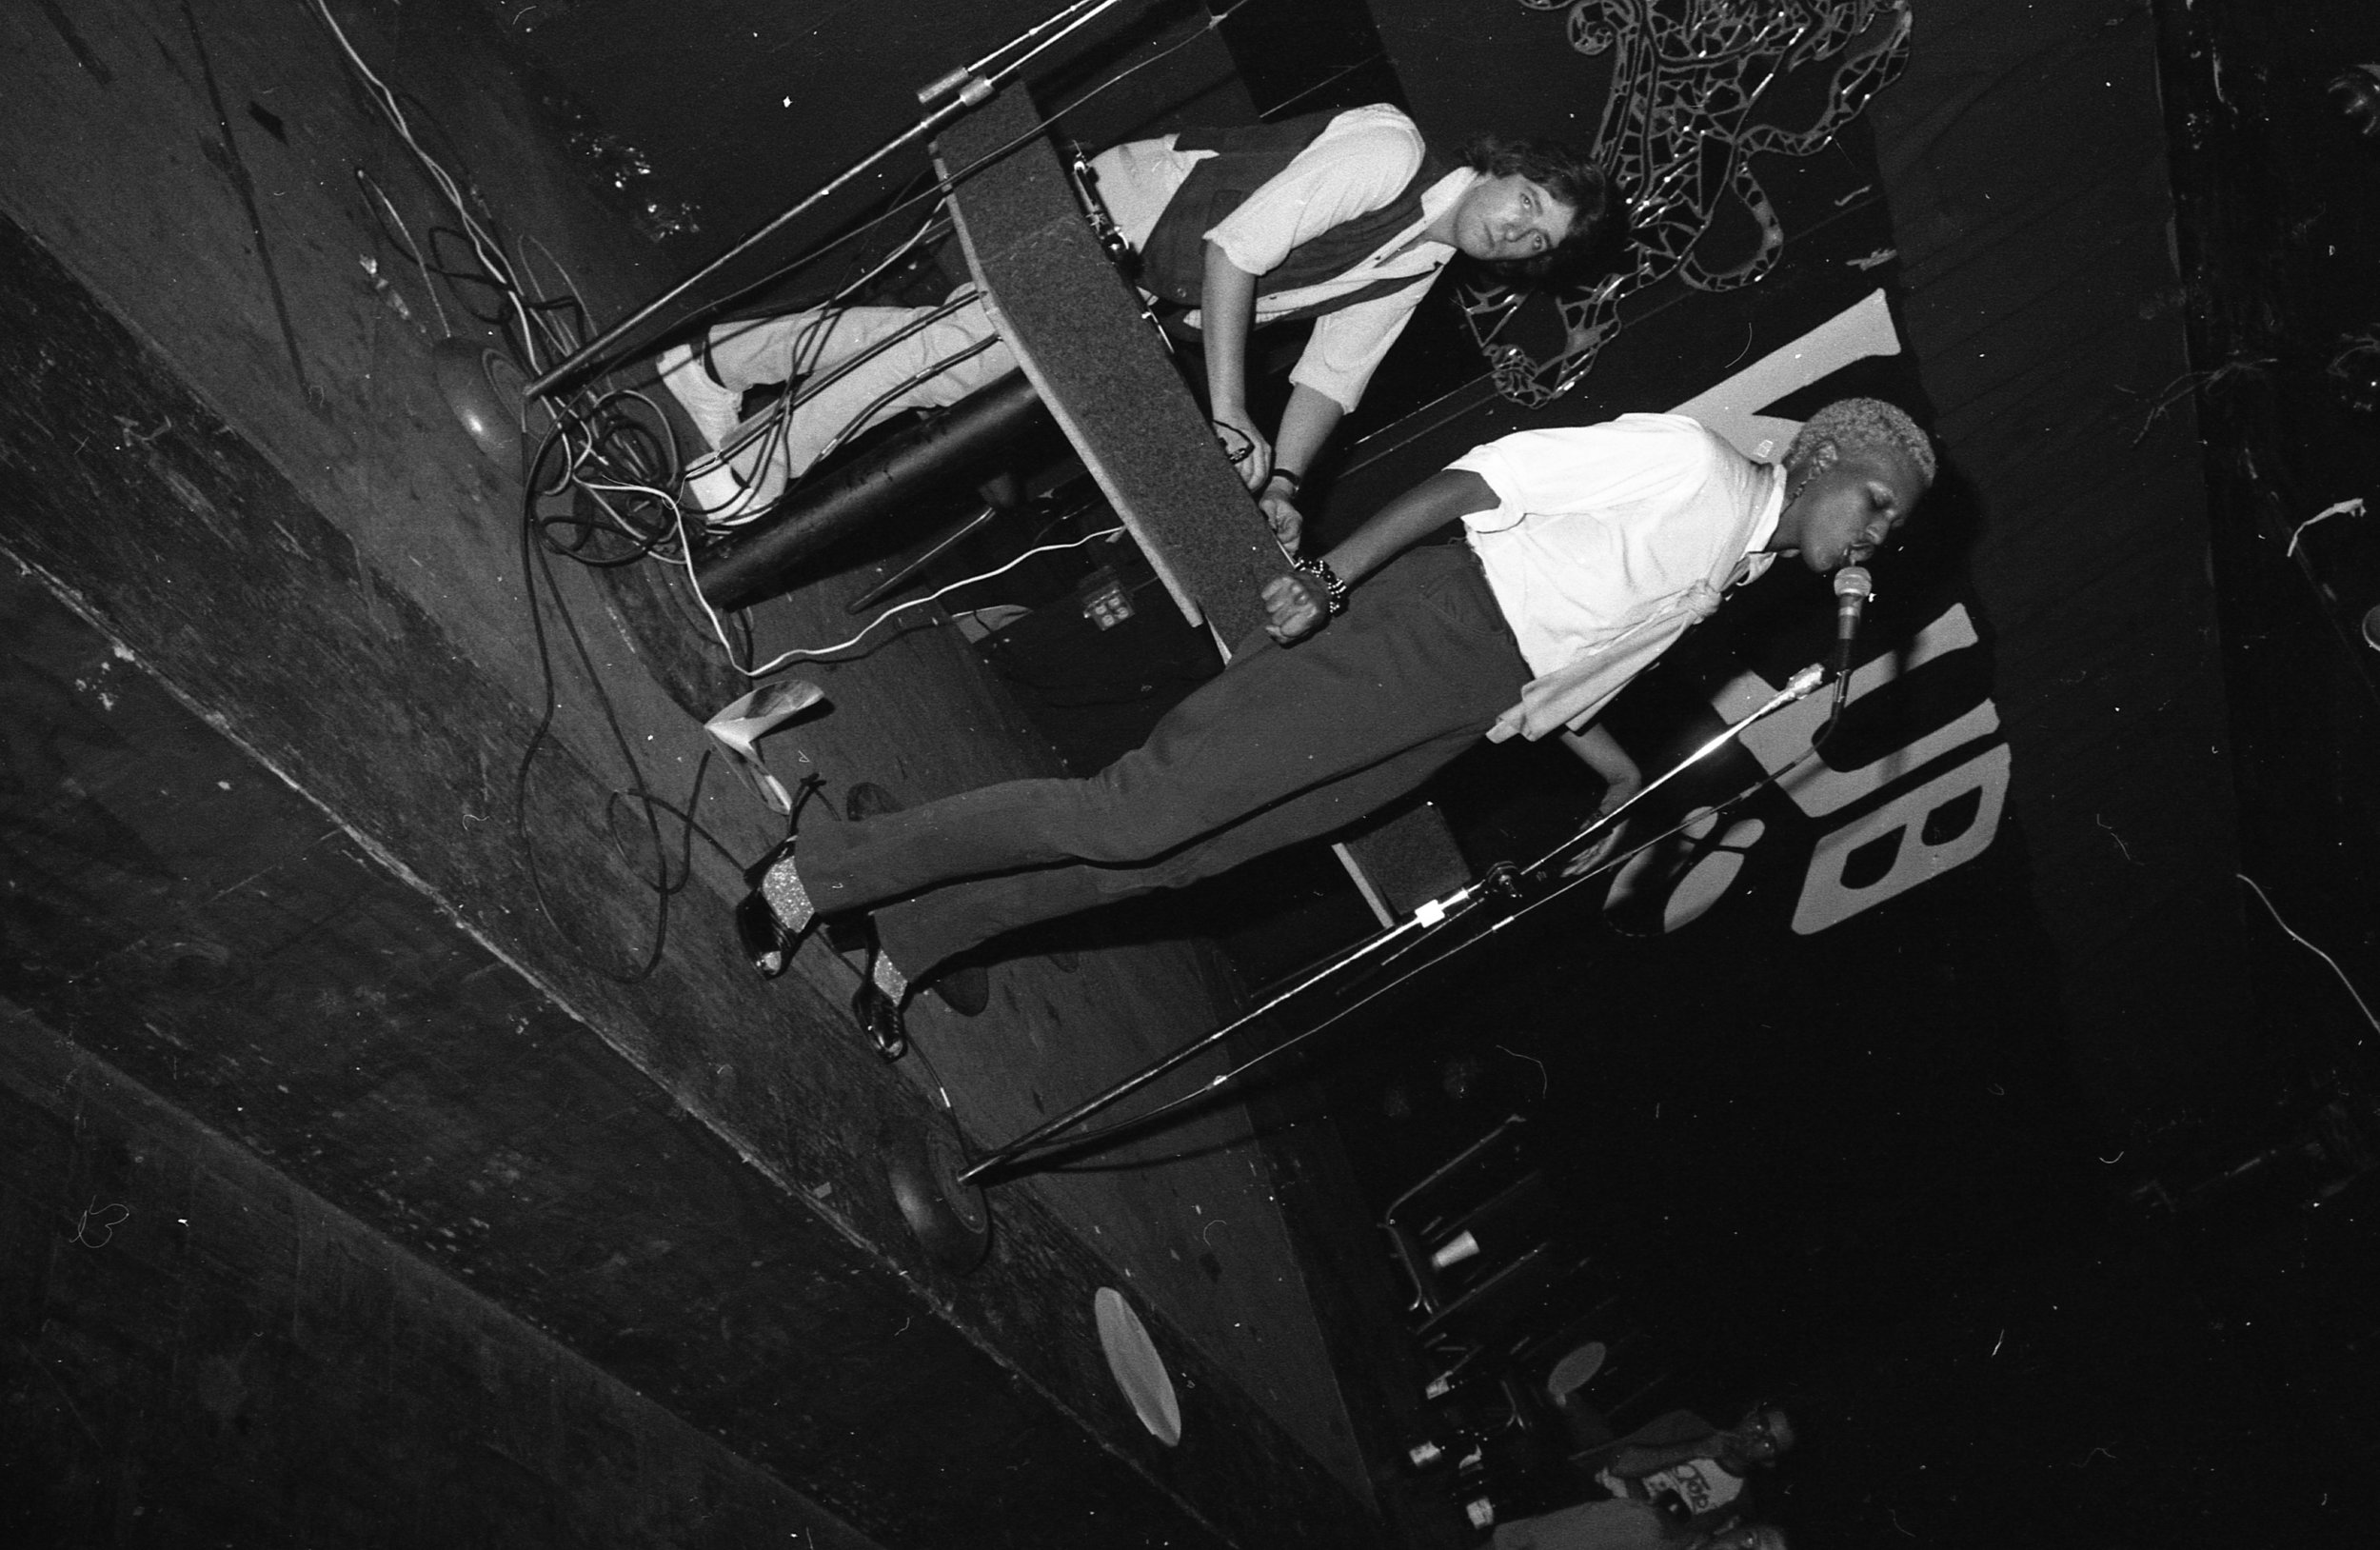 Taquila Mockingbird performs, rap contest, On Klub, Los Angeles, 1981